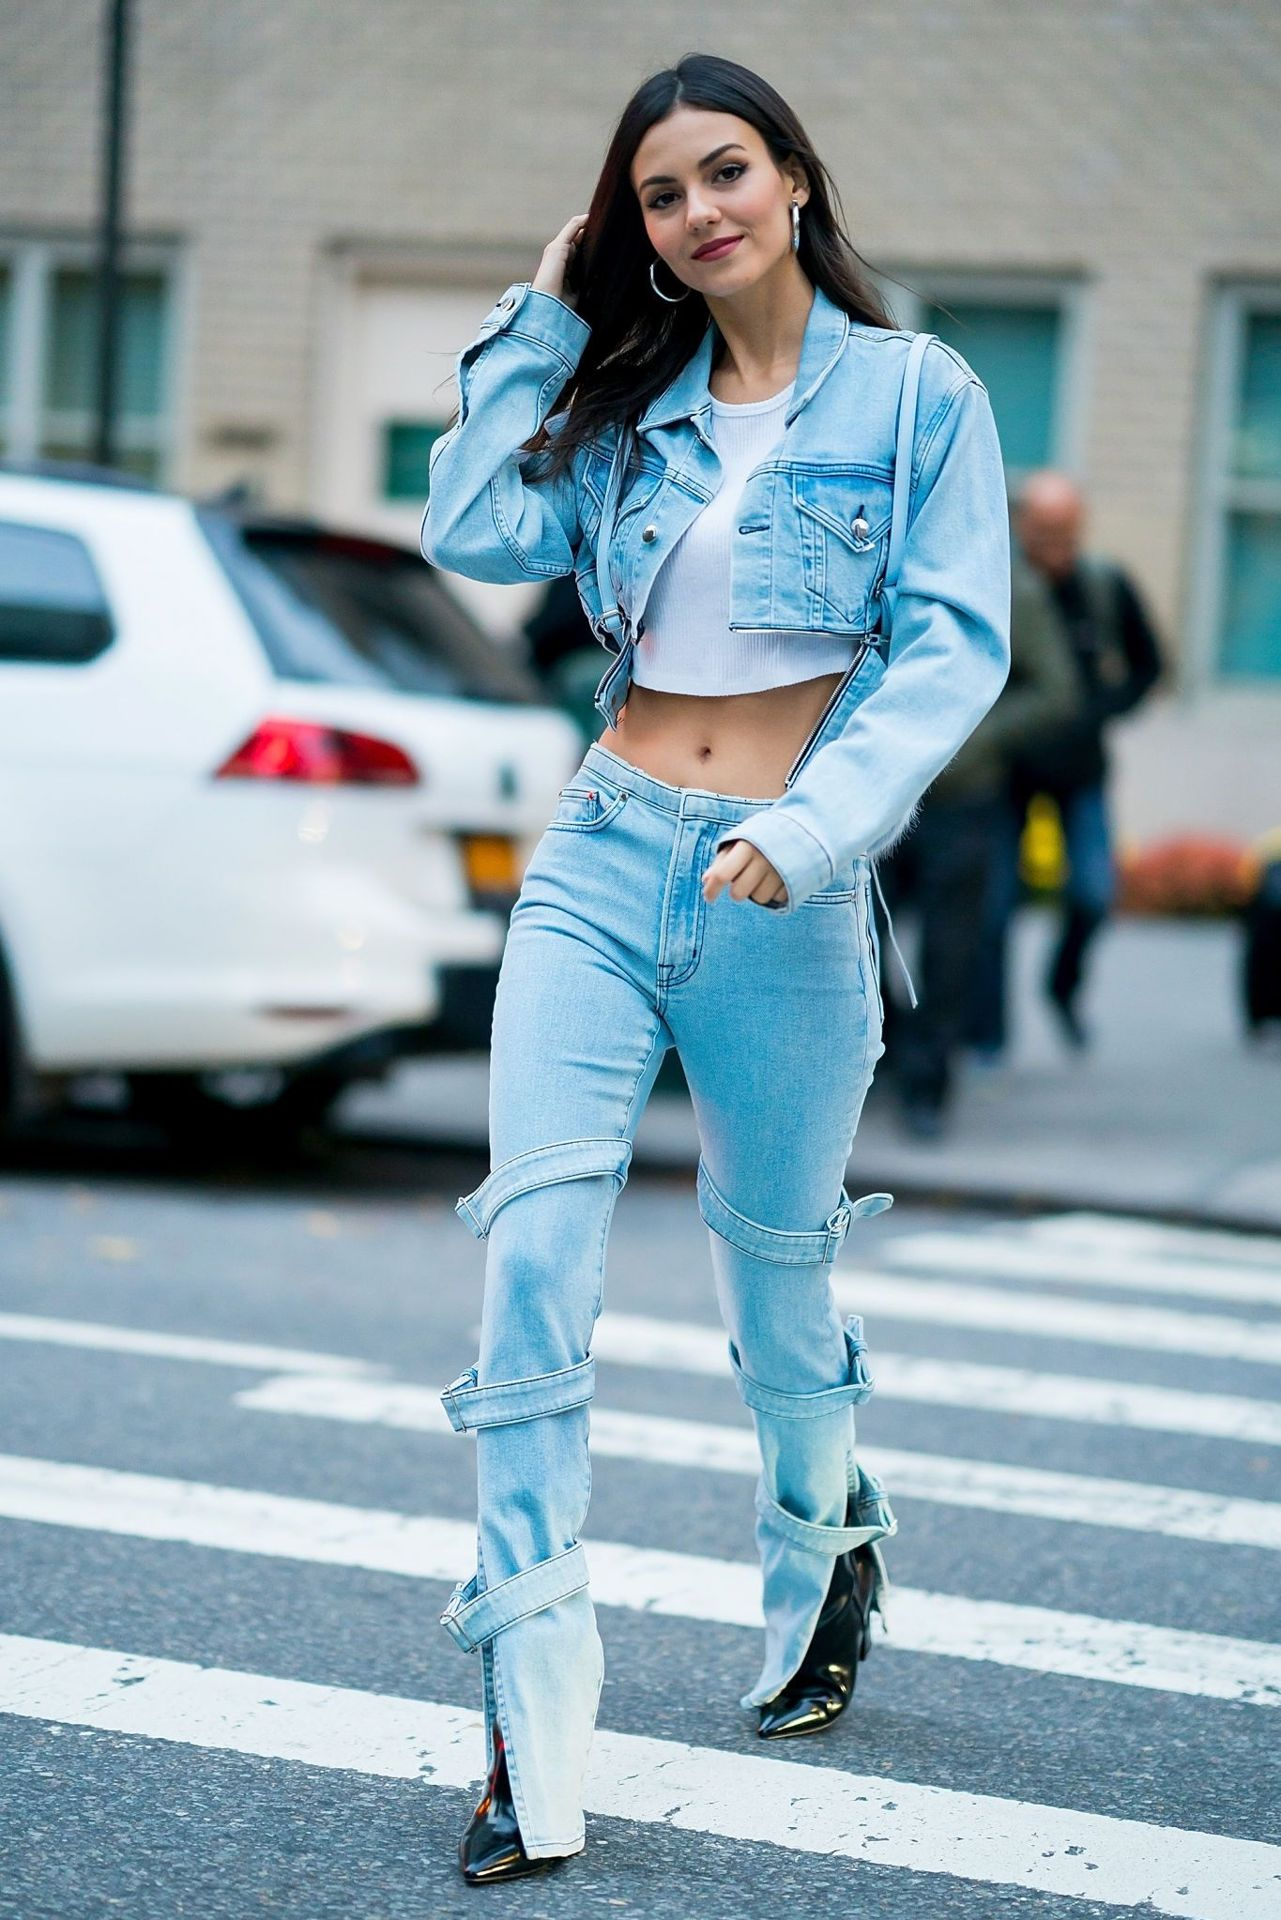 Victoria Justice New York City November 7, 2018 – Star Style